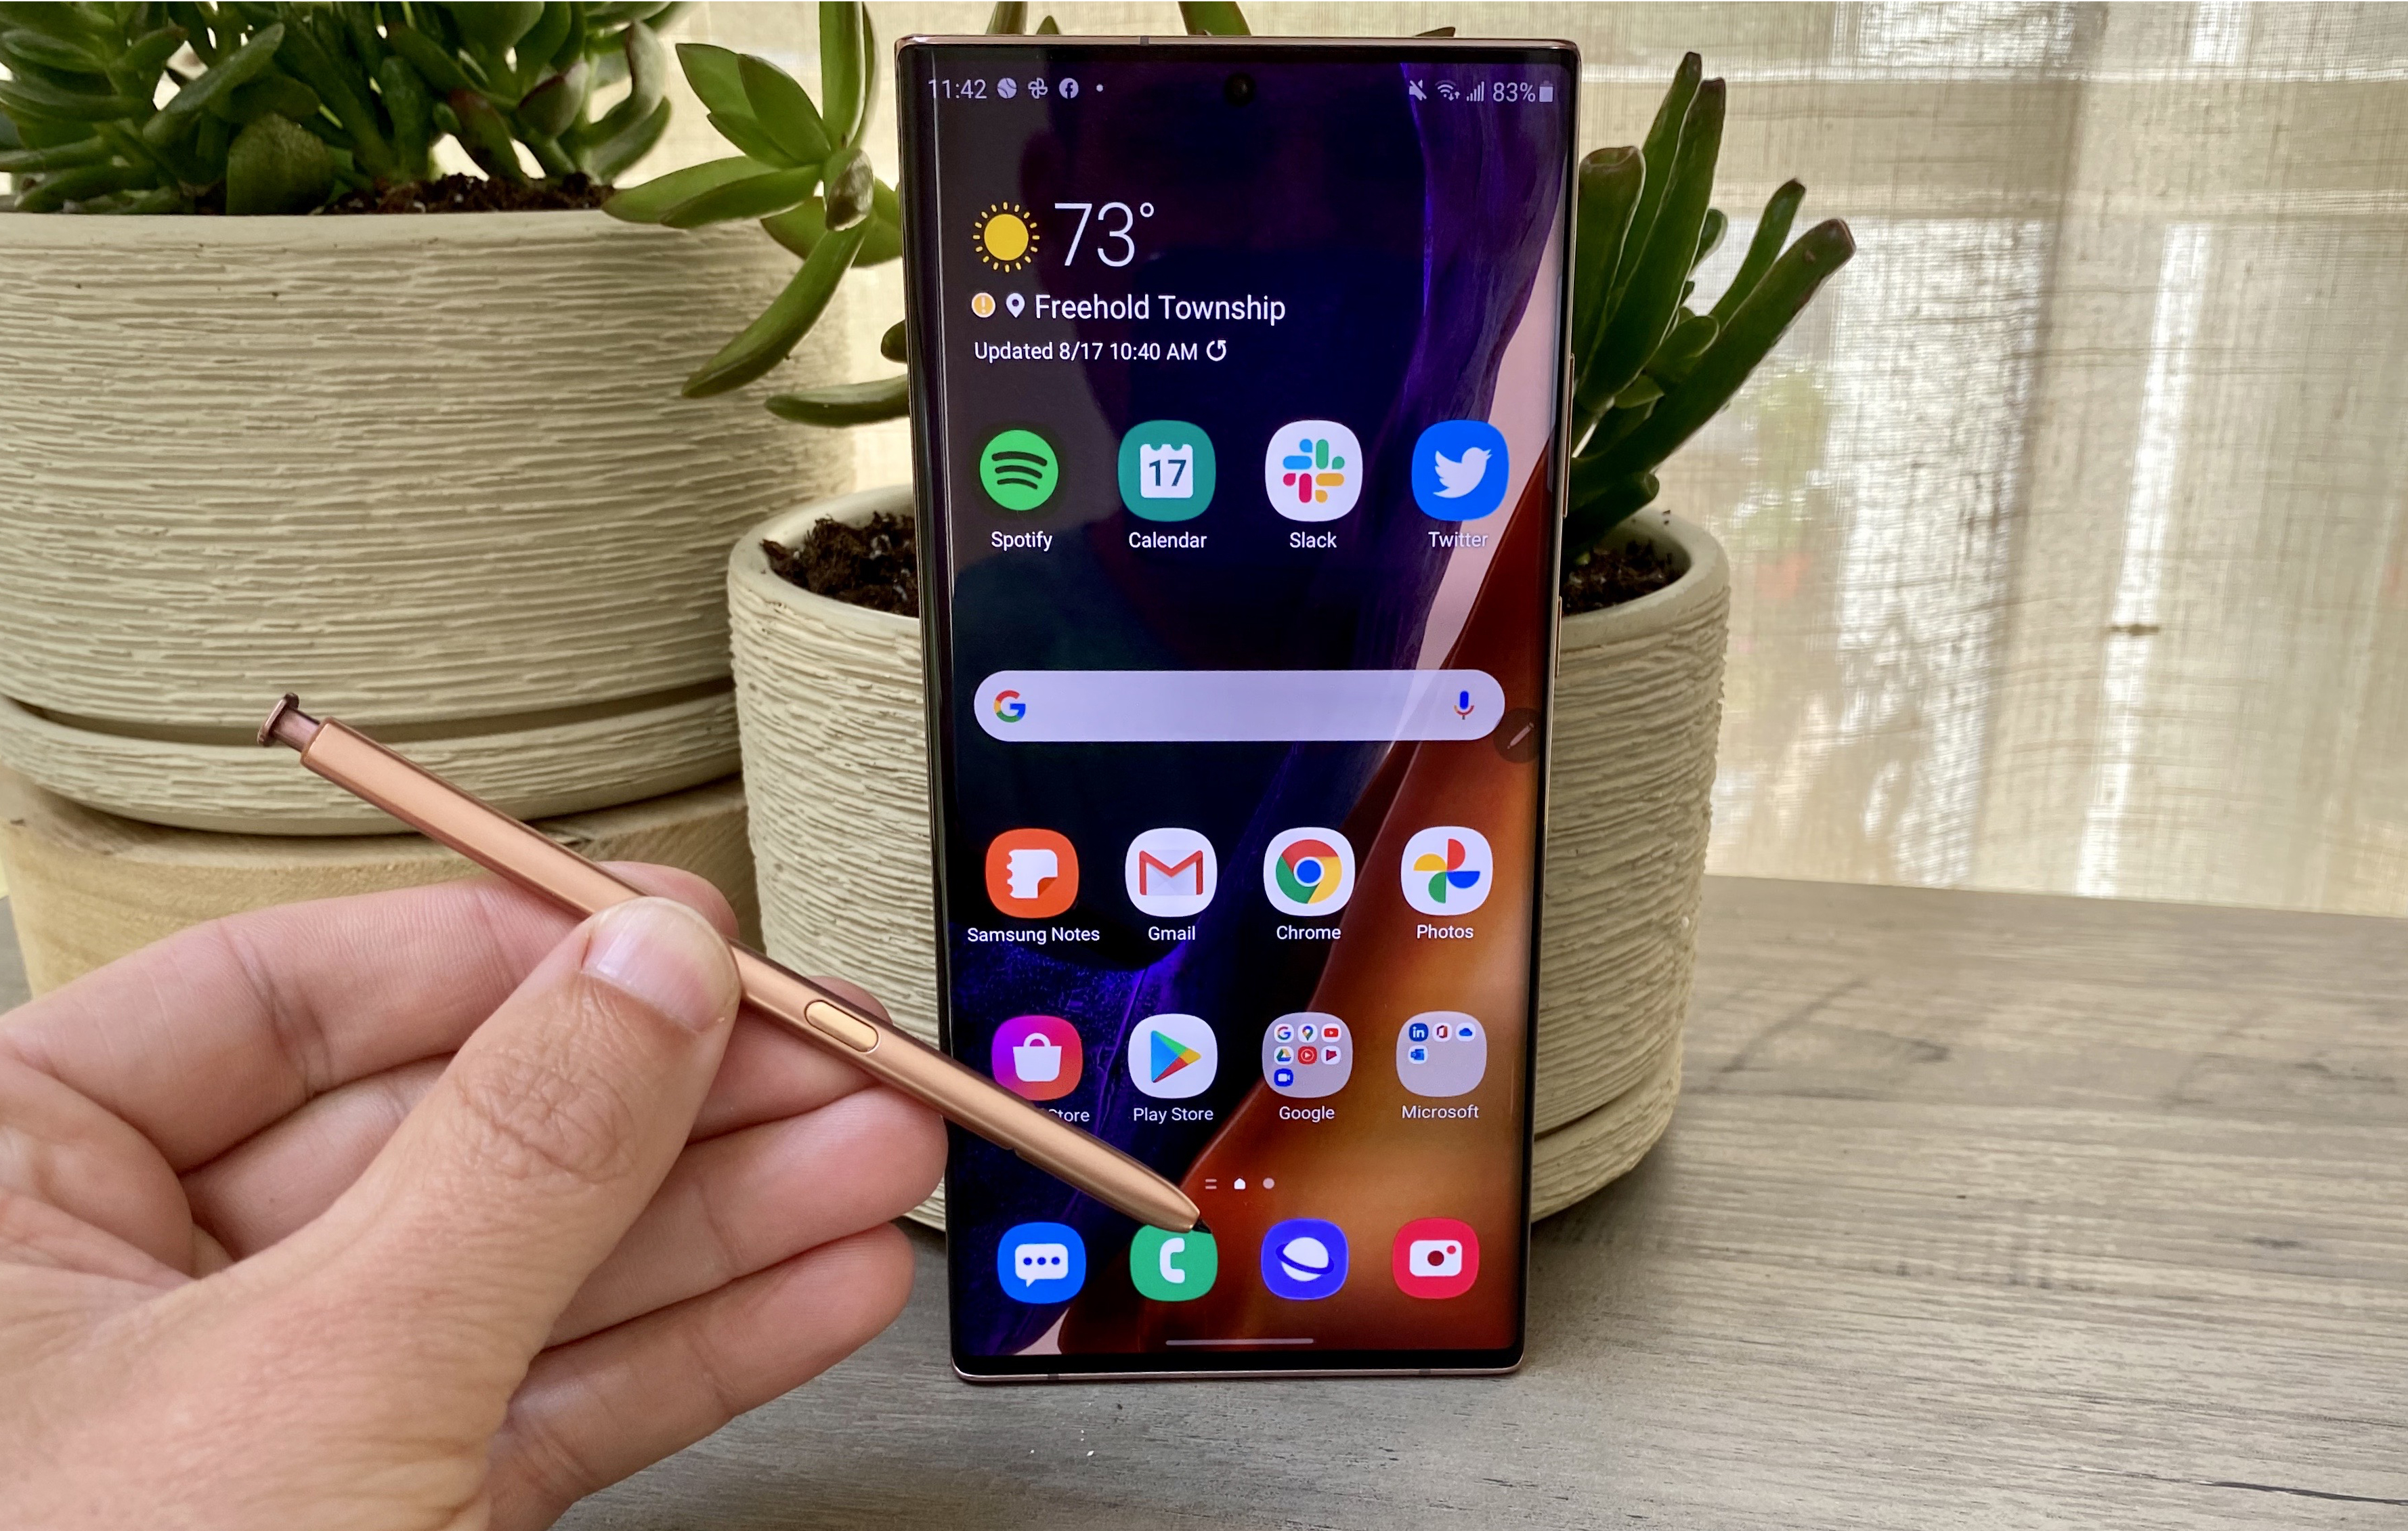 Samsung Galaxy Note 22 could actually be on the way, claims leaker